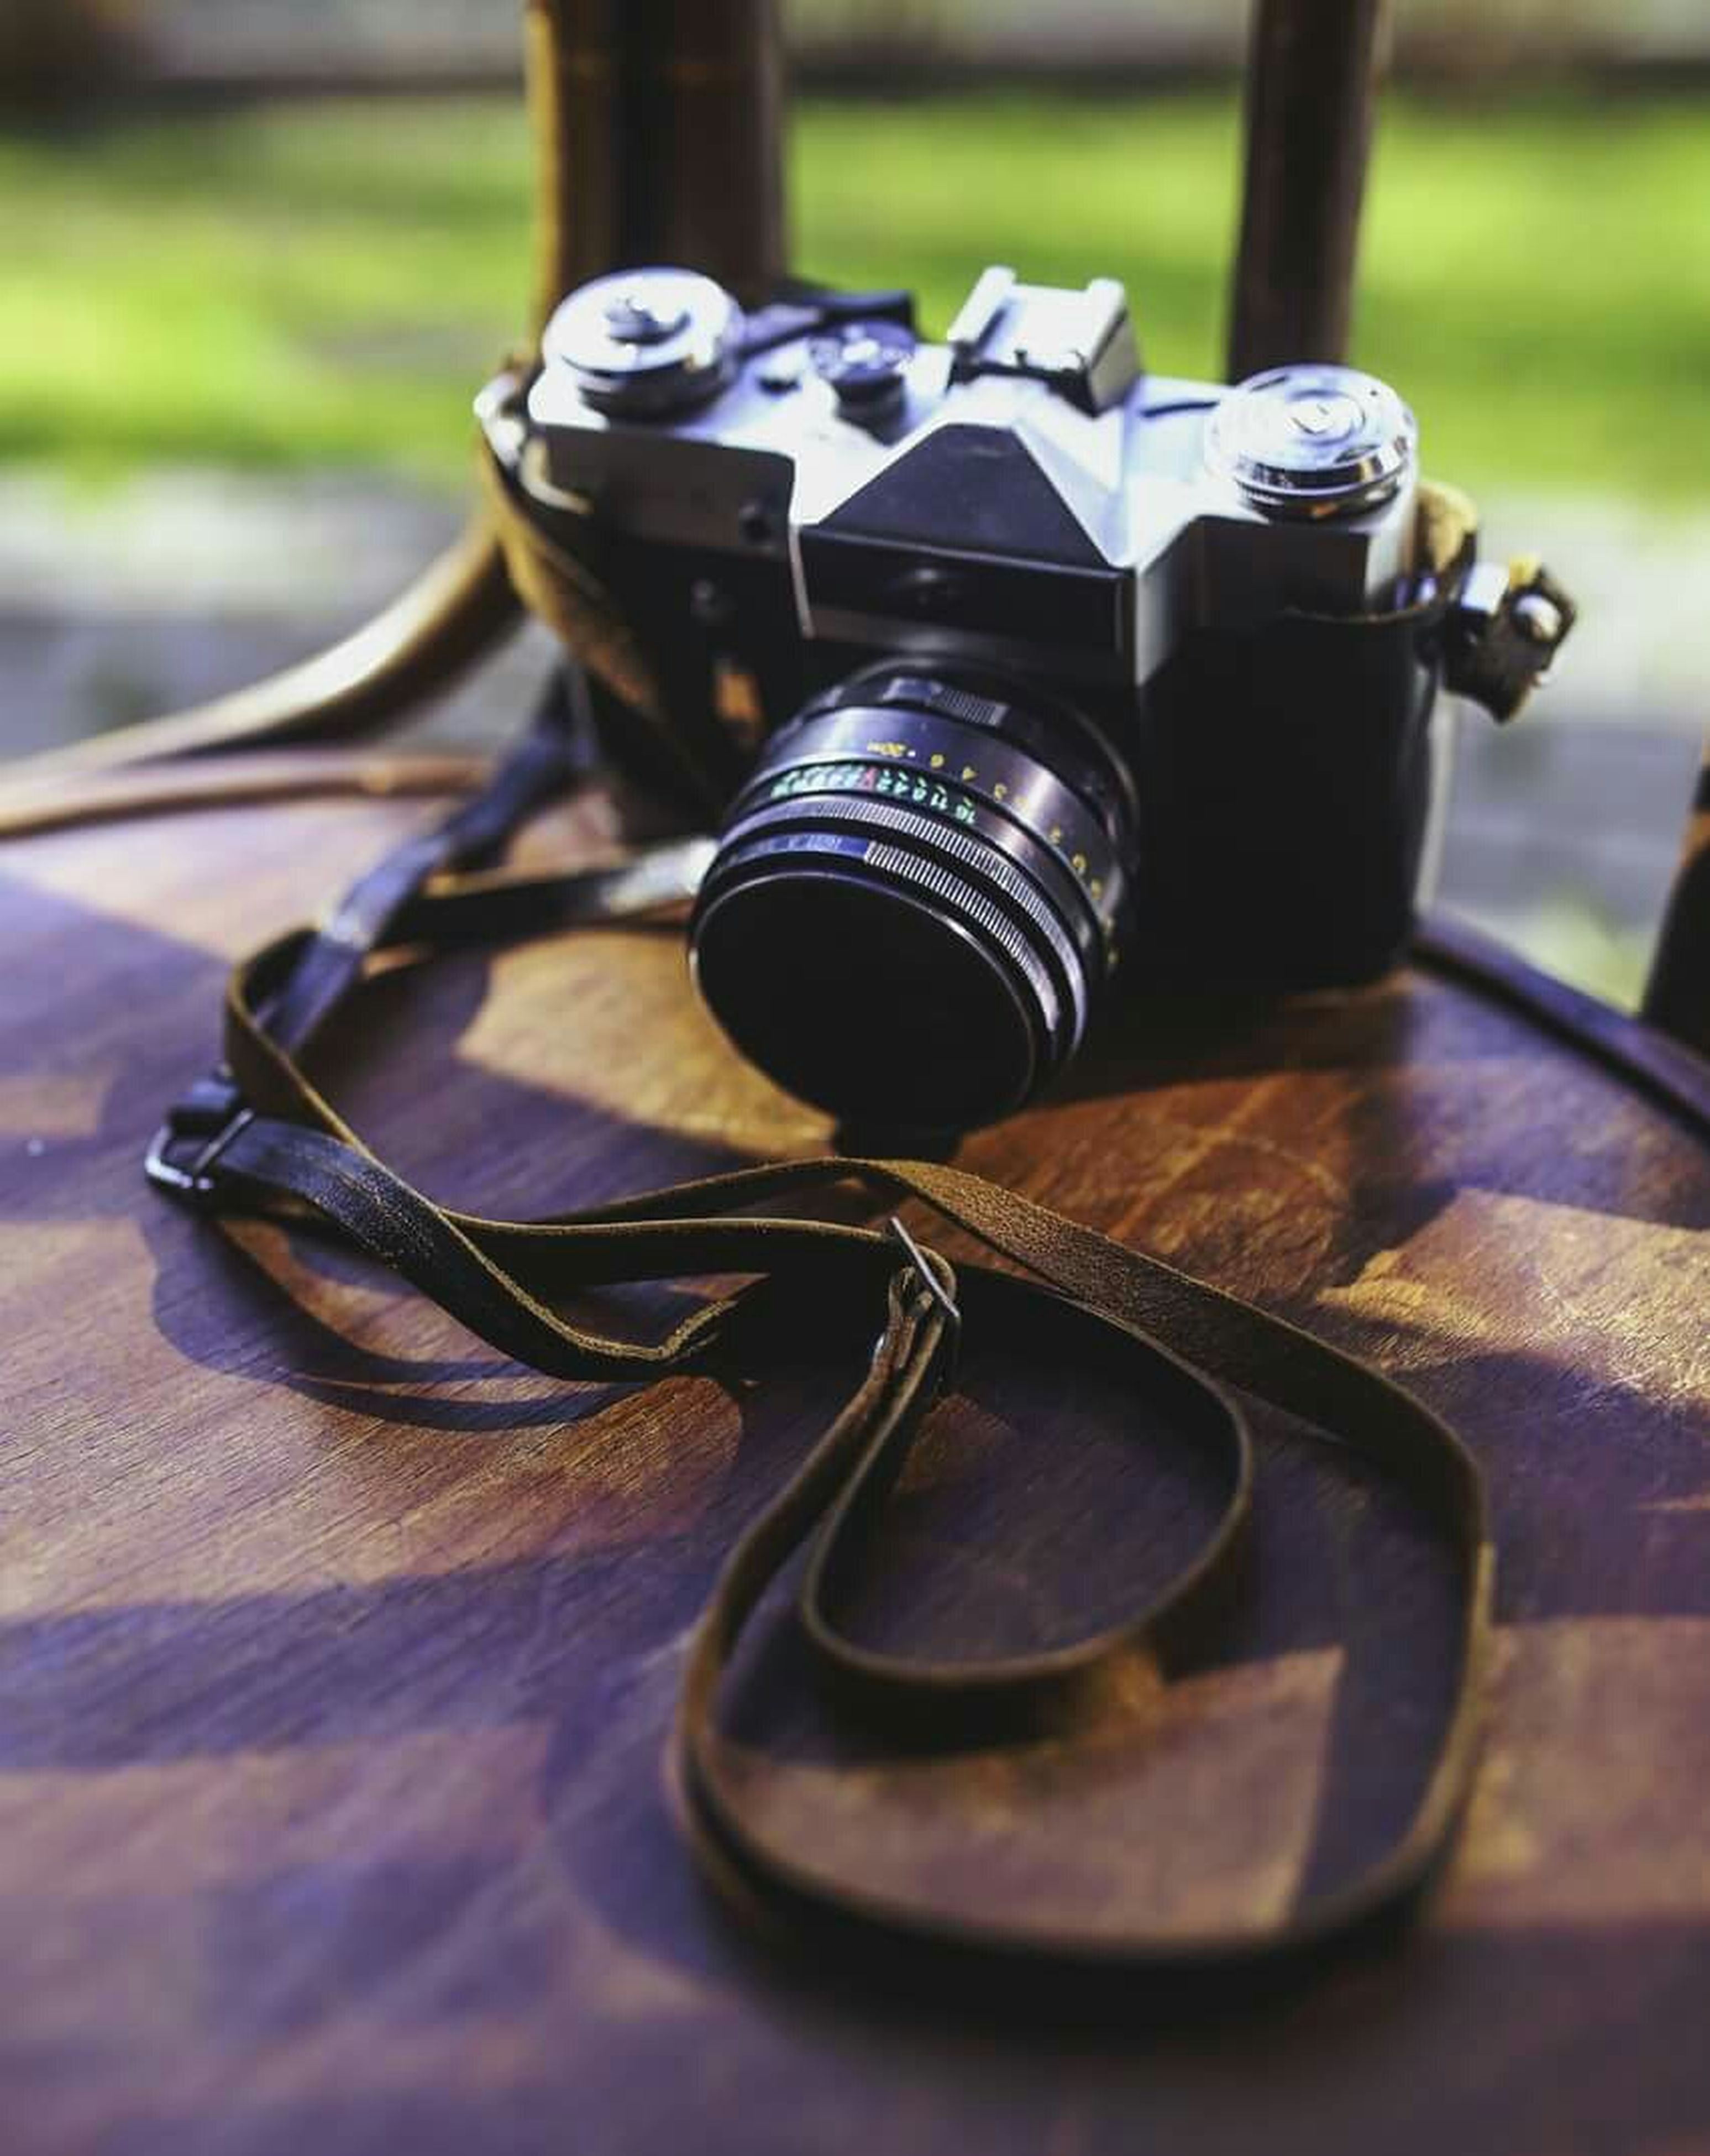 focus on foreground, selective focus, close-up, metal, still life, day, sunlight, technology, equipment, music, no people, outdoors, old-fashioned, part of, table, single object, metallic, man made object, bicycle, surface level